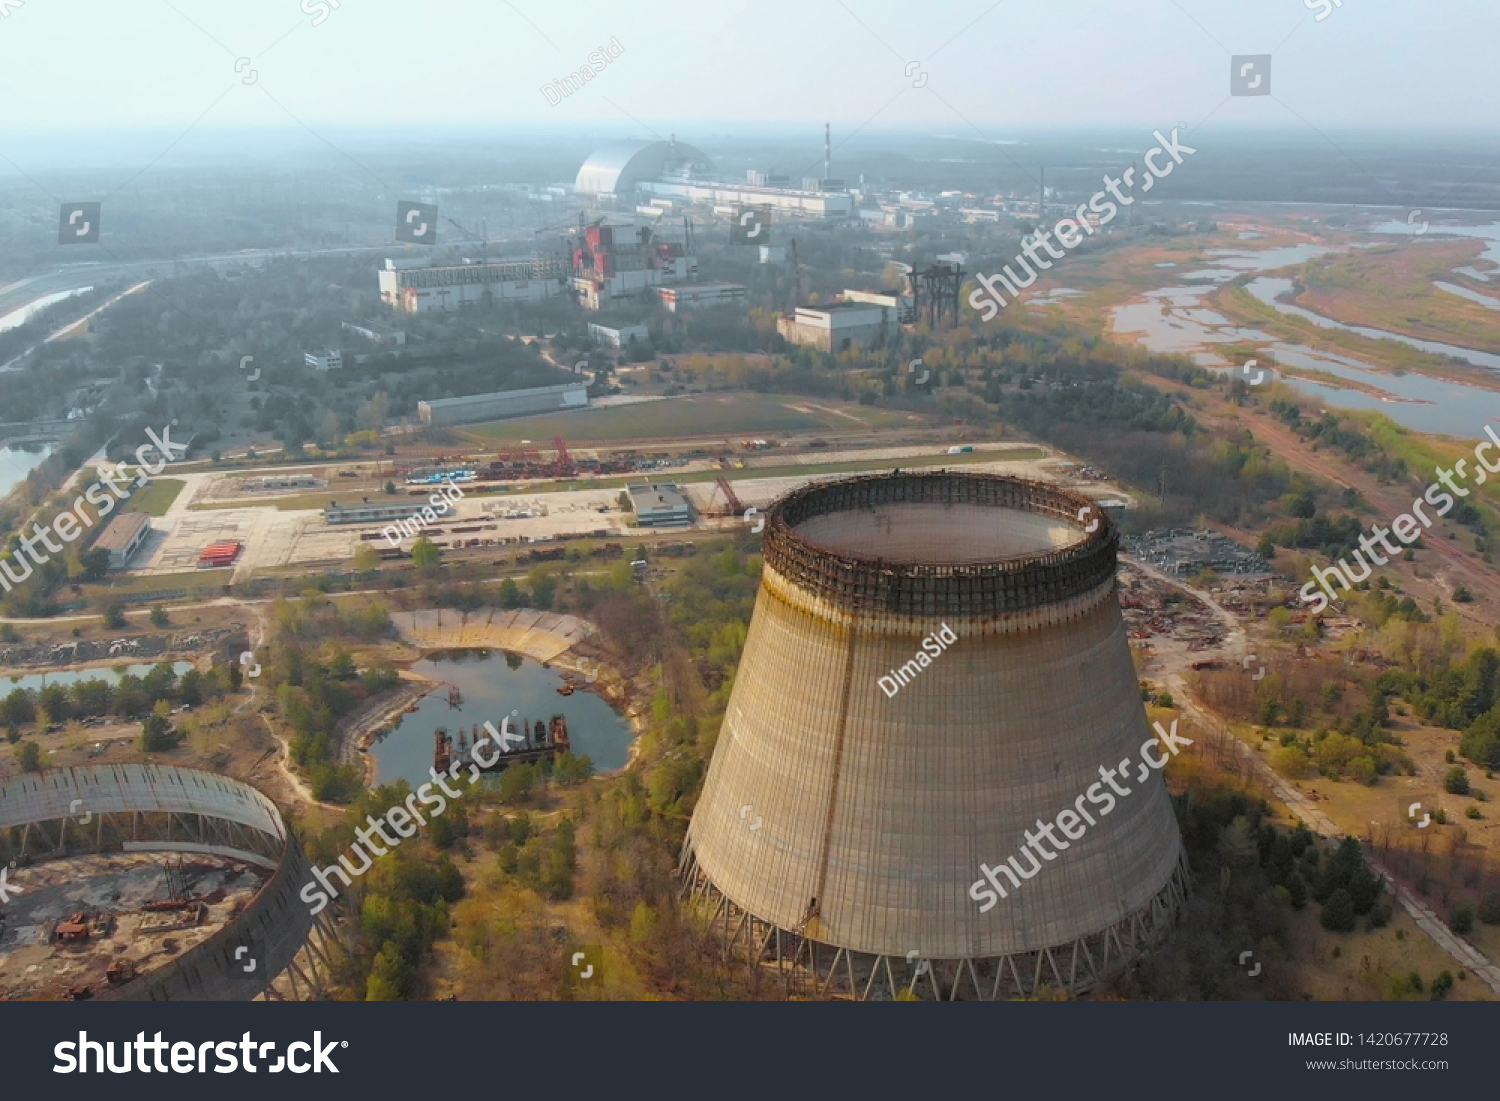 Chernobyl nuclear power plant. Cooling tower overlooking the nuclear power plant in Chernobyl. View of the destroyed nuclear power plant. Chernobyl nuclear power plant, aerial view. Chernobyl NPP #1420677728